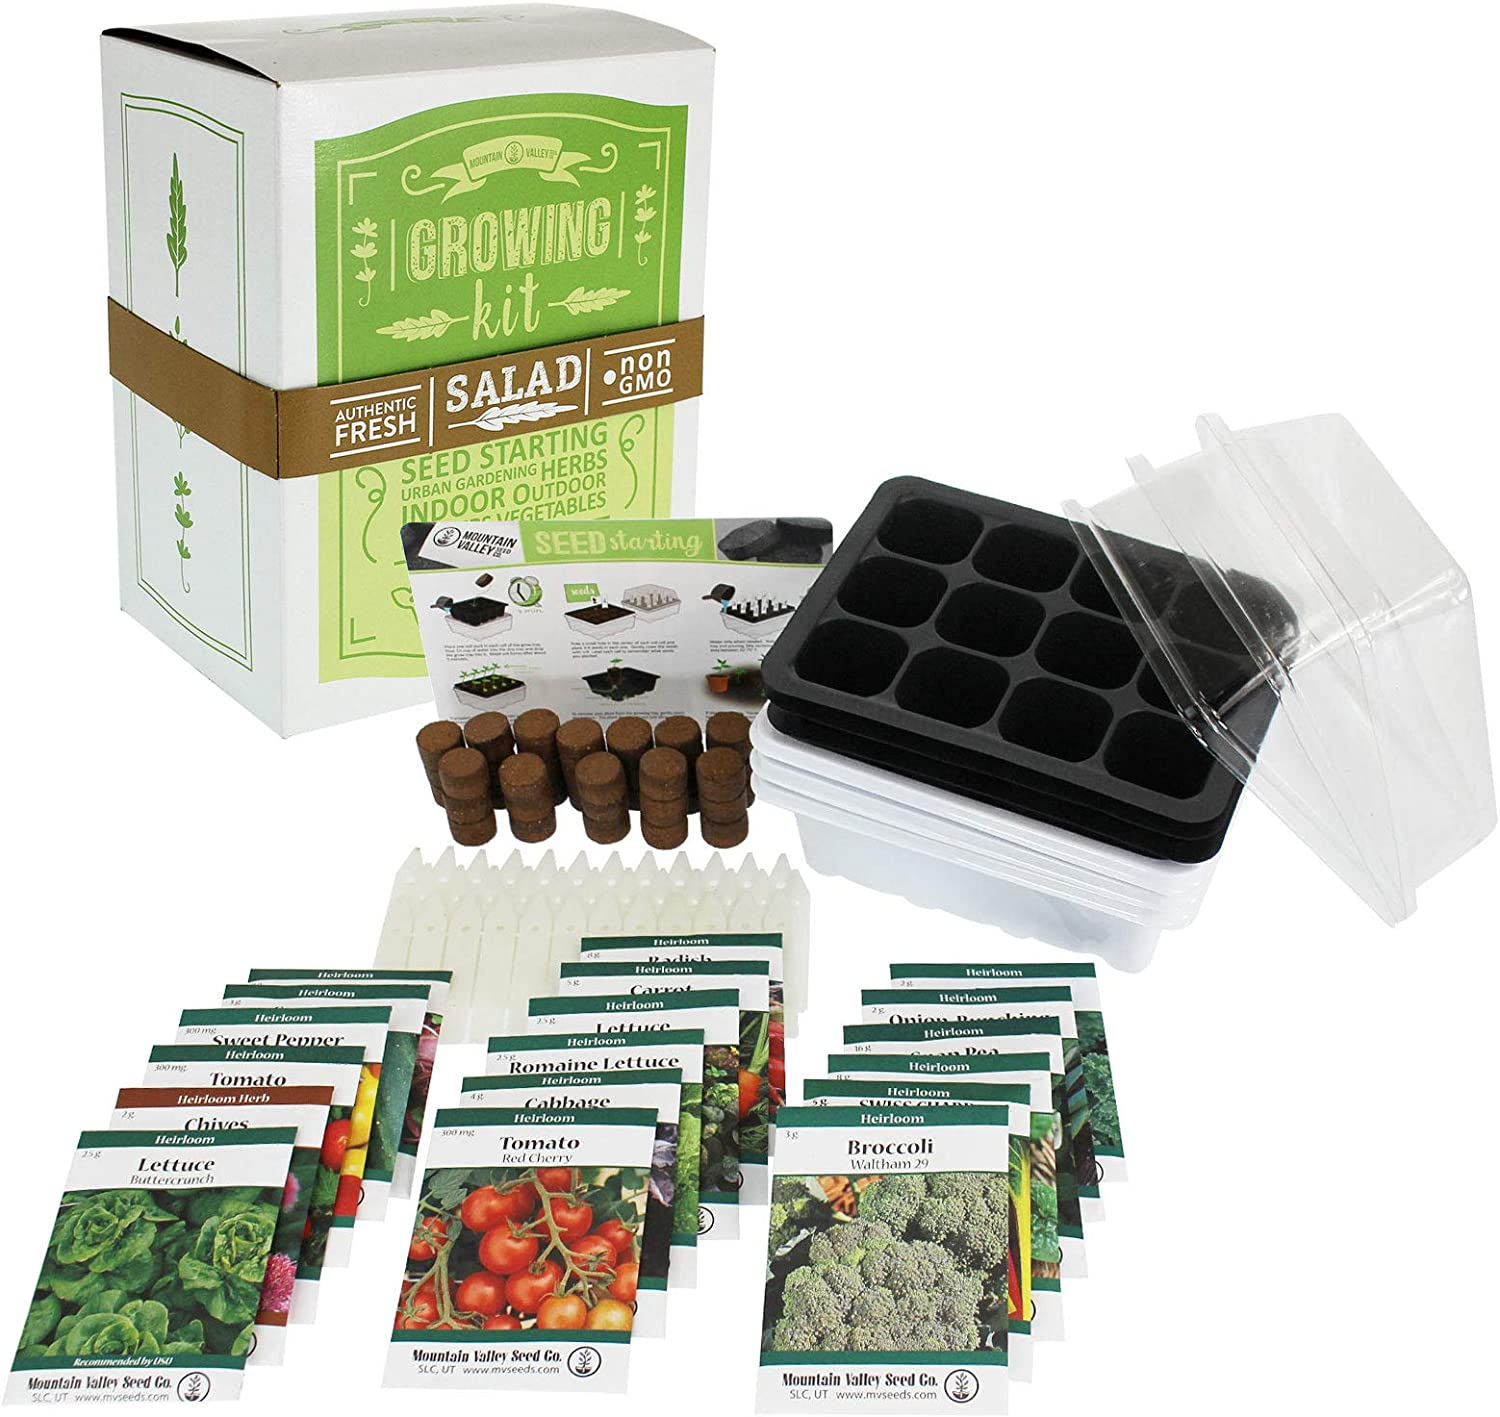 Mexican Salsa & Hot Sauce Making Kit | Premium Kit | 18 Non-GMO Seed Varieties | Mexican Seeds for Hot Sauce, Salsa, Pico De Gallo | Cilantro Herb, Tomato, Onion, Peppers, Basil, Jalapeno, More